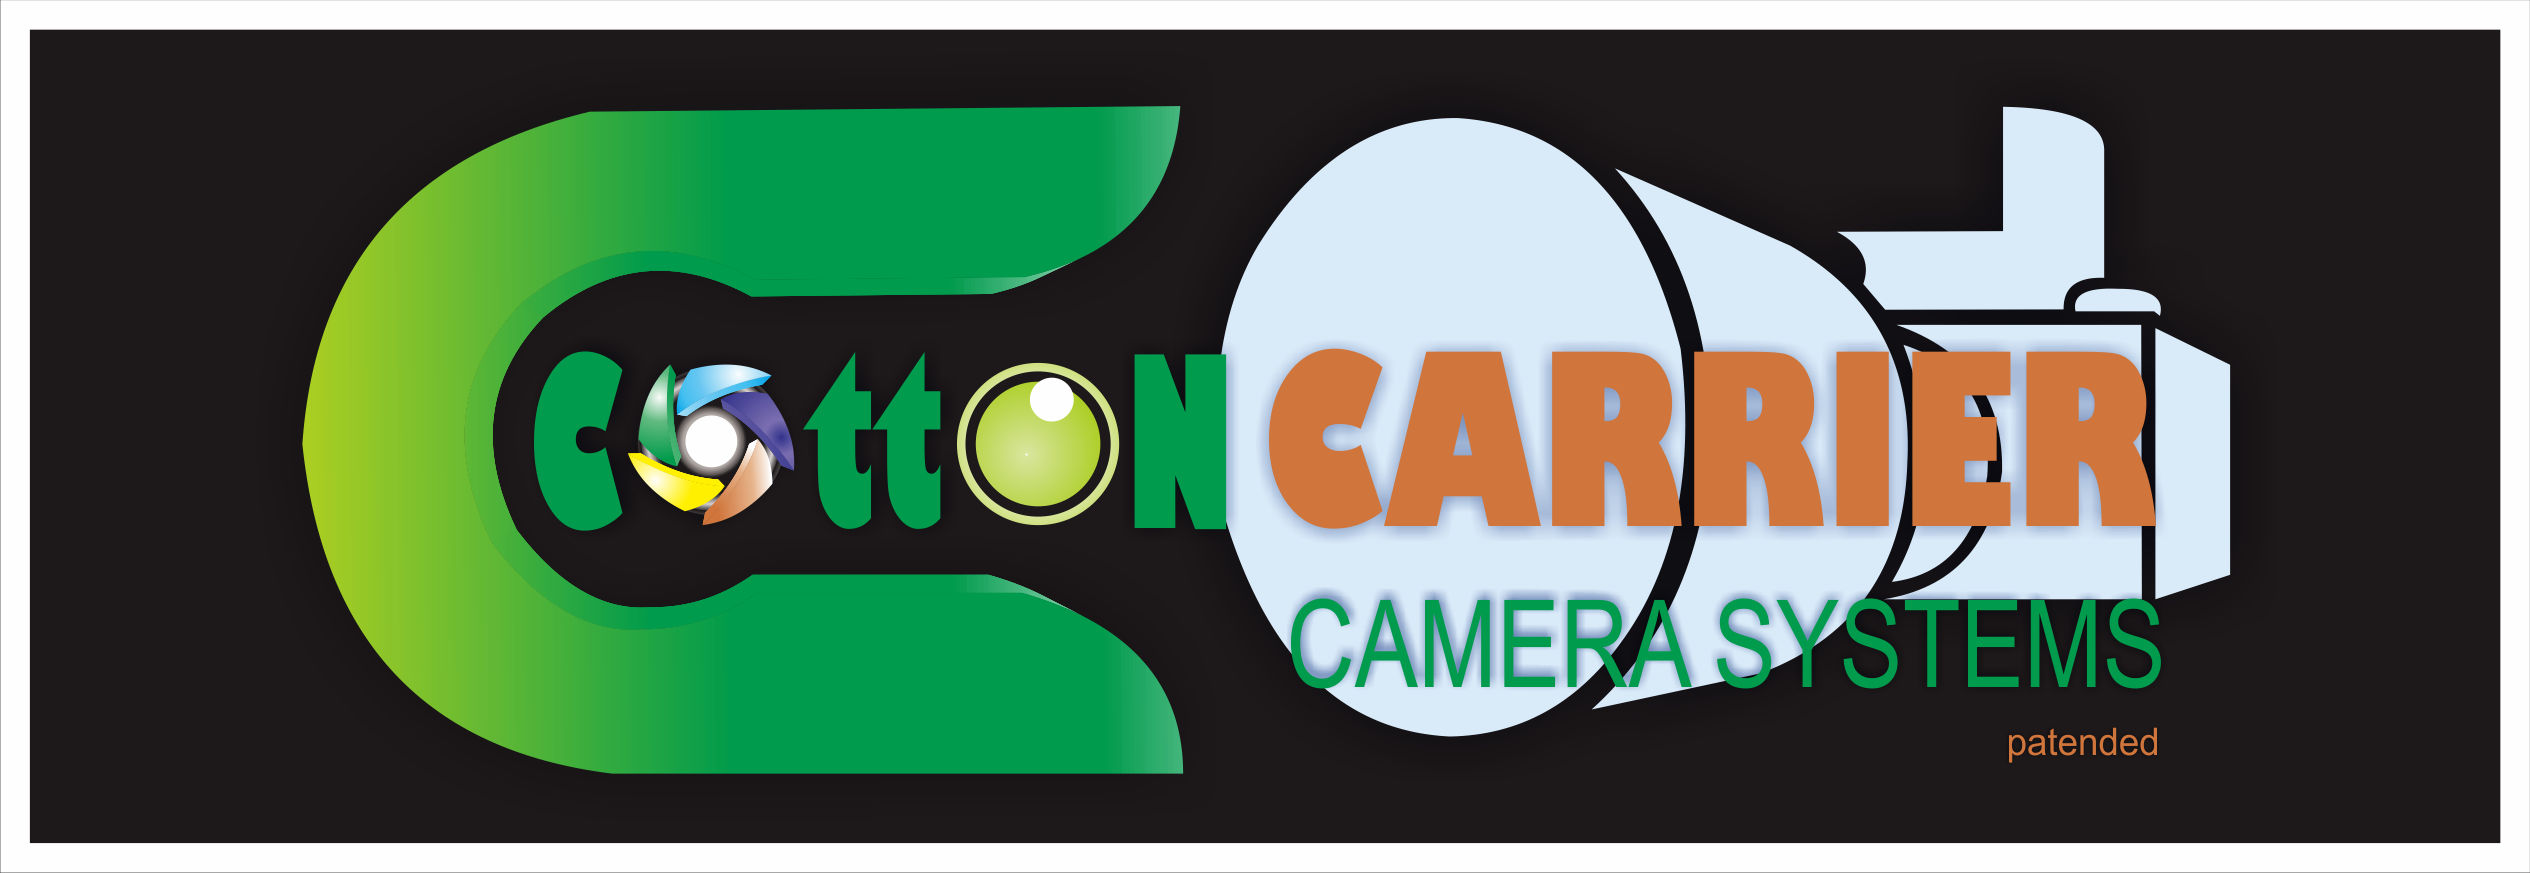 Logo Design by Teguh Hanuraga - Entry No. 3 in the Logo Design Contest Cotton Carrier Camera Systems Logo Design.